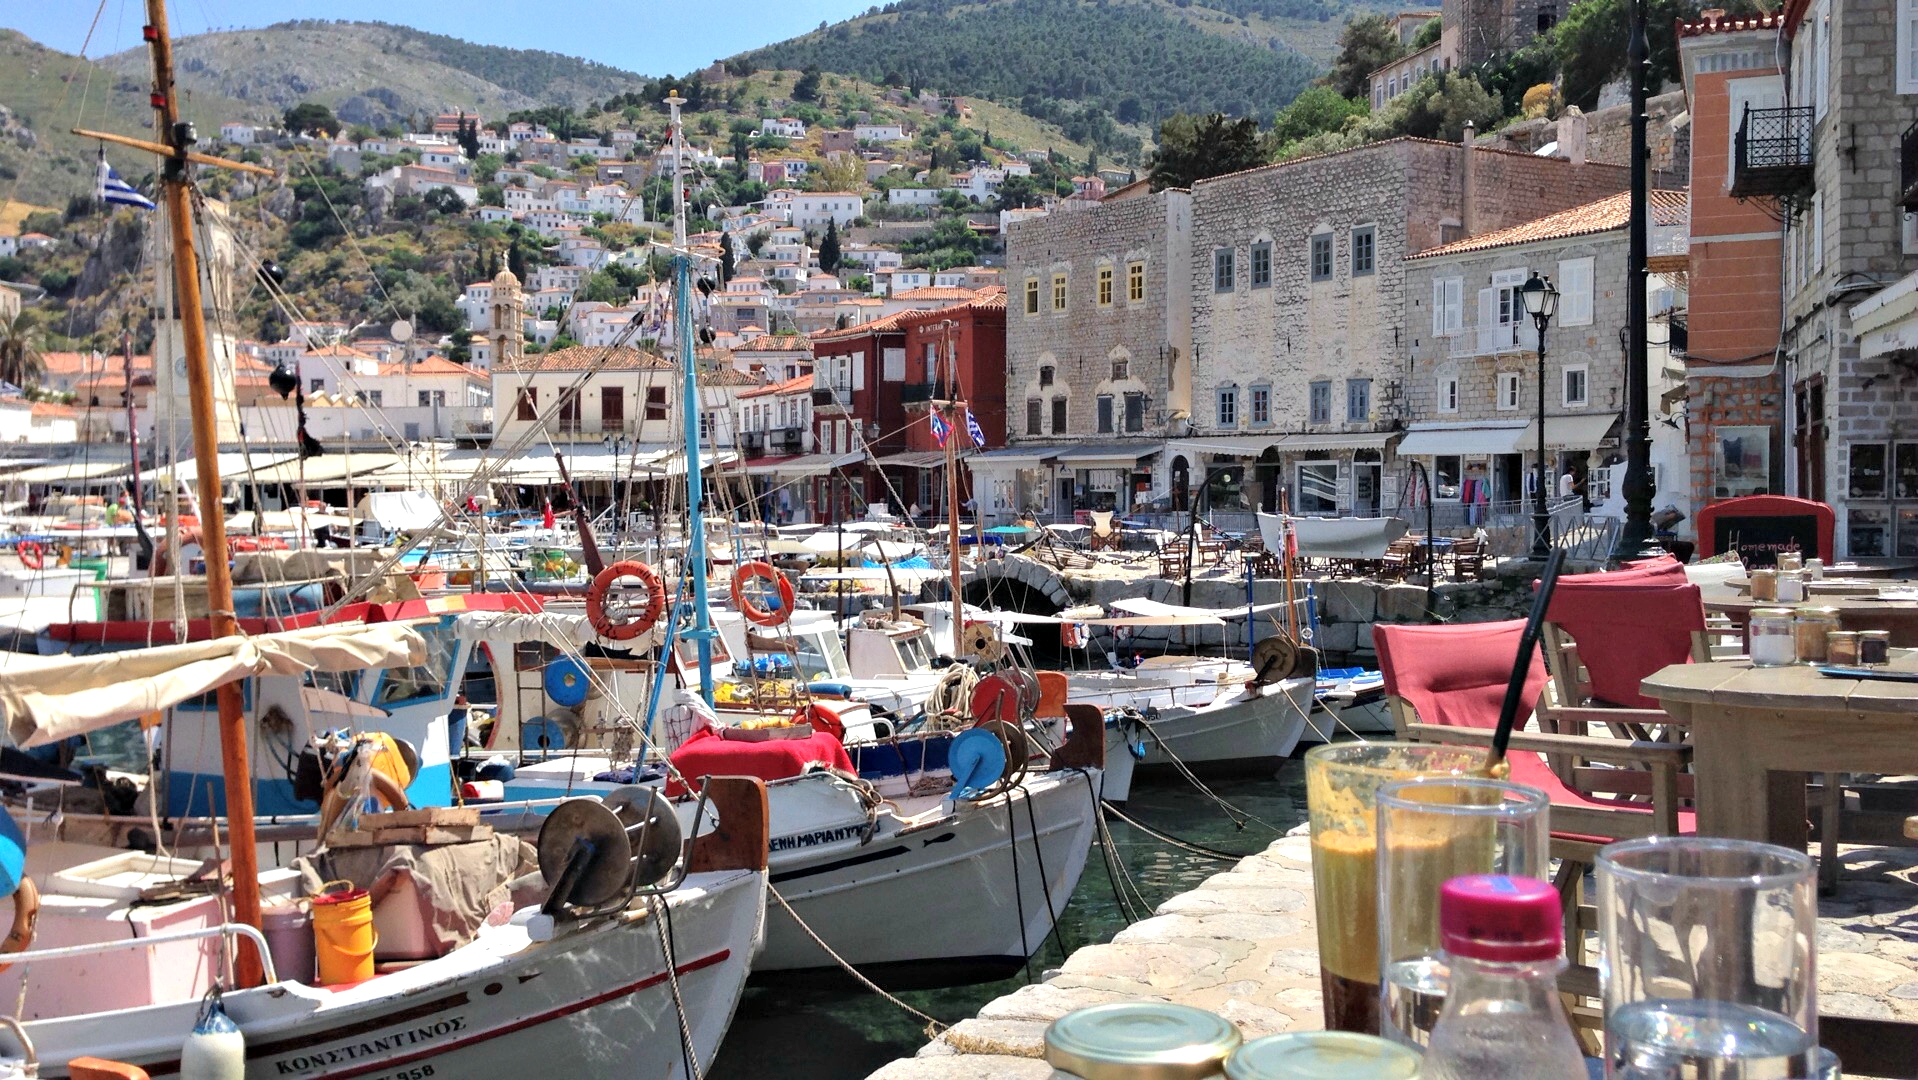 The Port of Hydra Photo by Francesca Muir